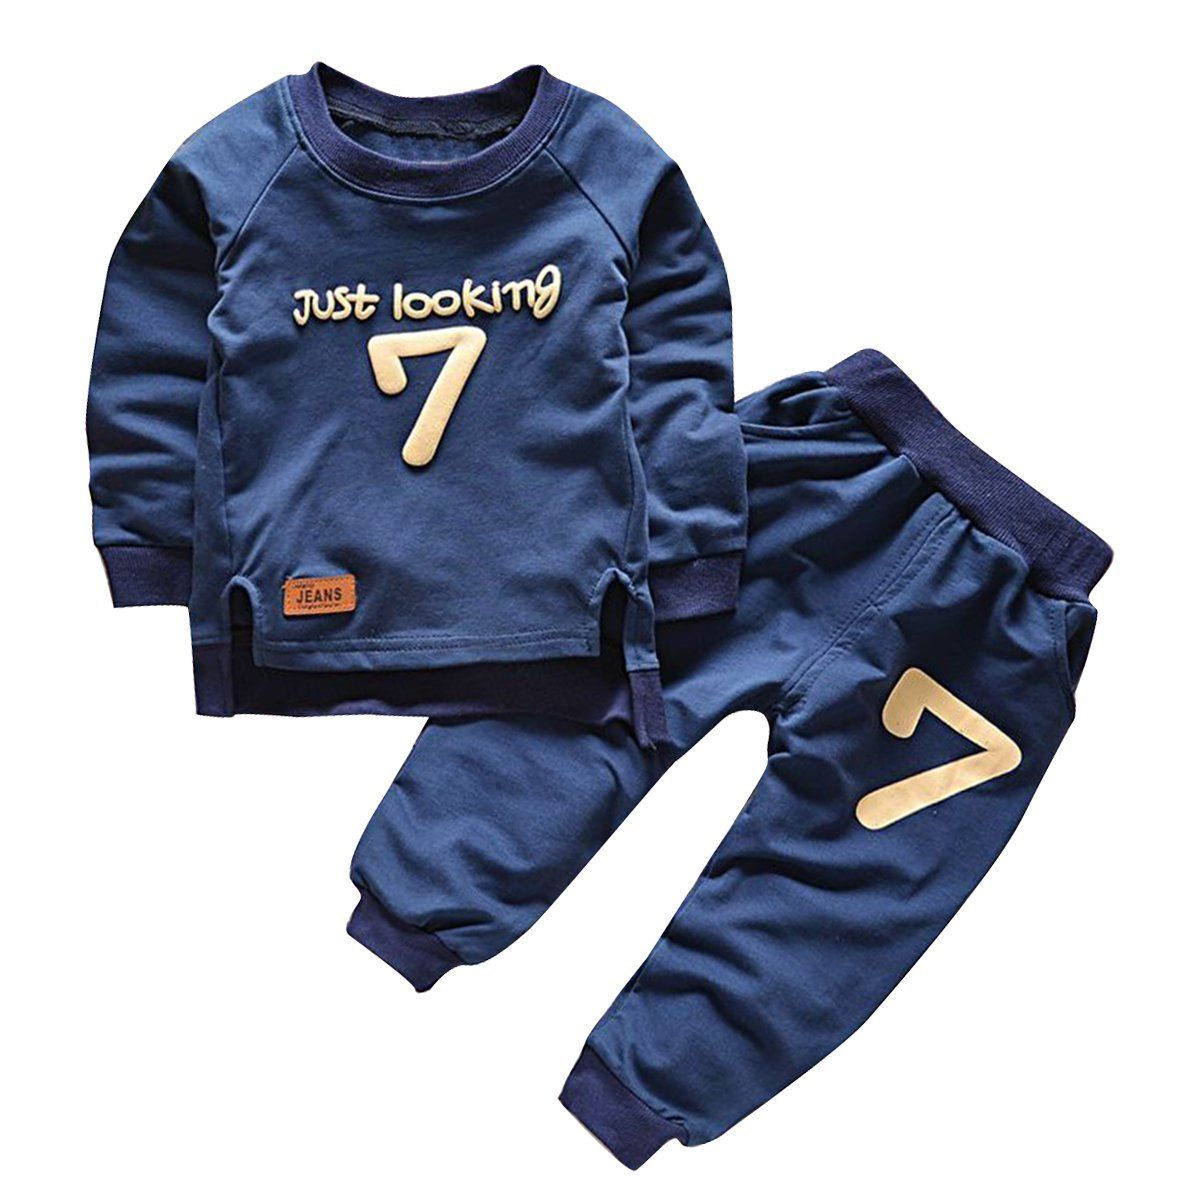 2pcs Baby Boy Clothes Set Long Sleeve Sweatshirts number 7 Tops Toddler Kids O neck Hoodies Long Pants casual Suit Outfits 2pcs set baby clothes set boy